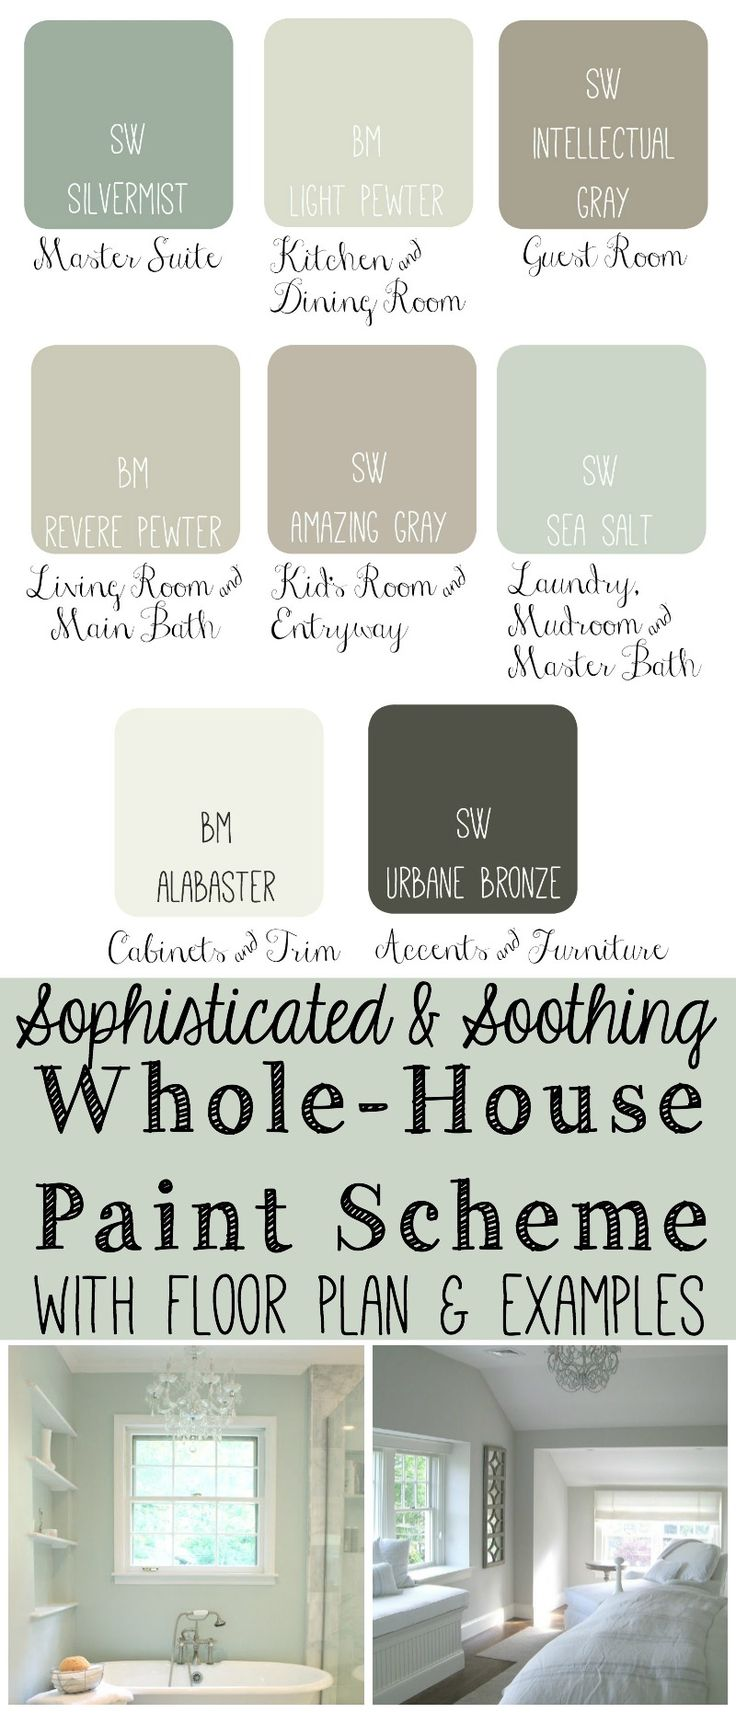 Today I put together a whole-house paint scheme I like to see how all the colors…